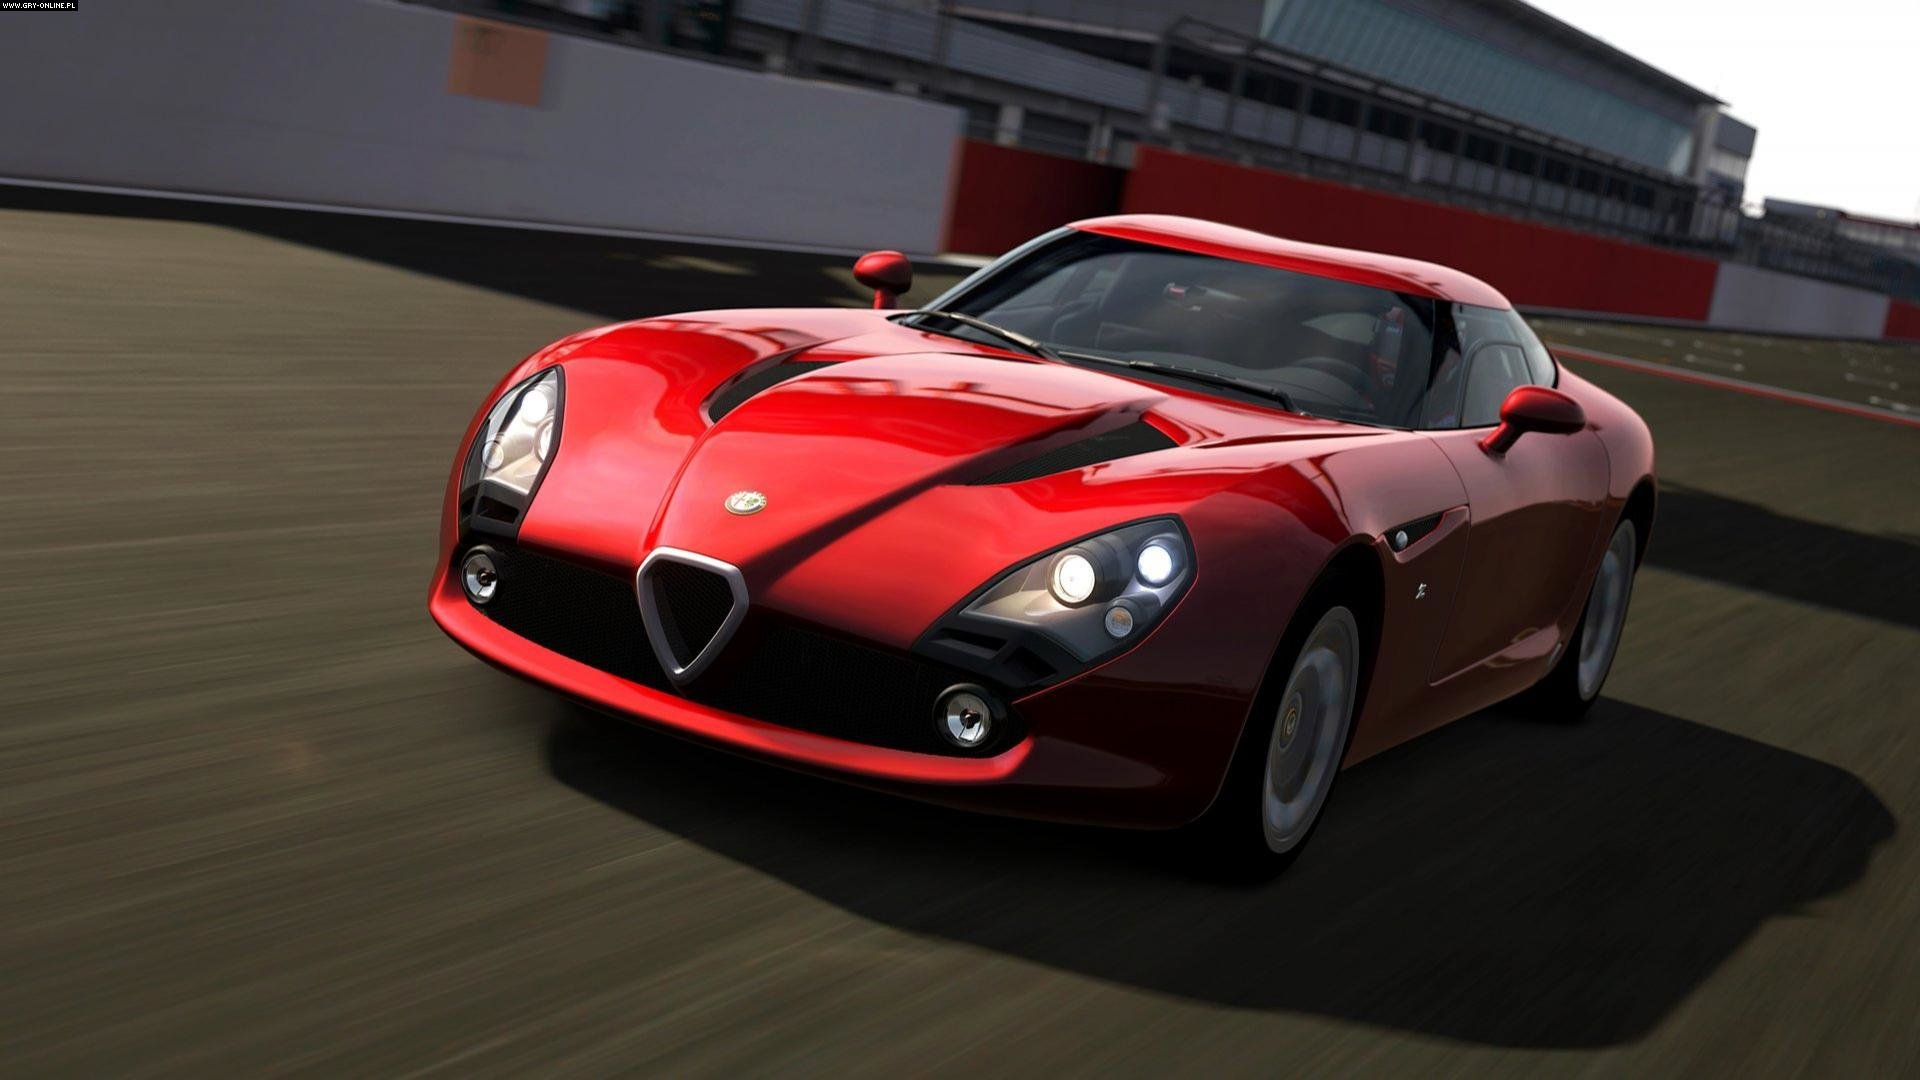 Gran turismo 6 wallpapers 1920x1080 full hd 1080p desktop backgrounds high resolution gran turismo 6 hd 1080p wallpaper id43256 for computer publicscrutiny Images